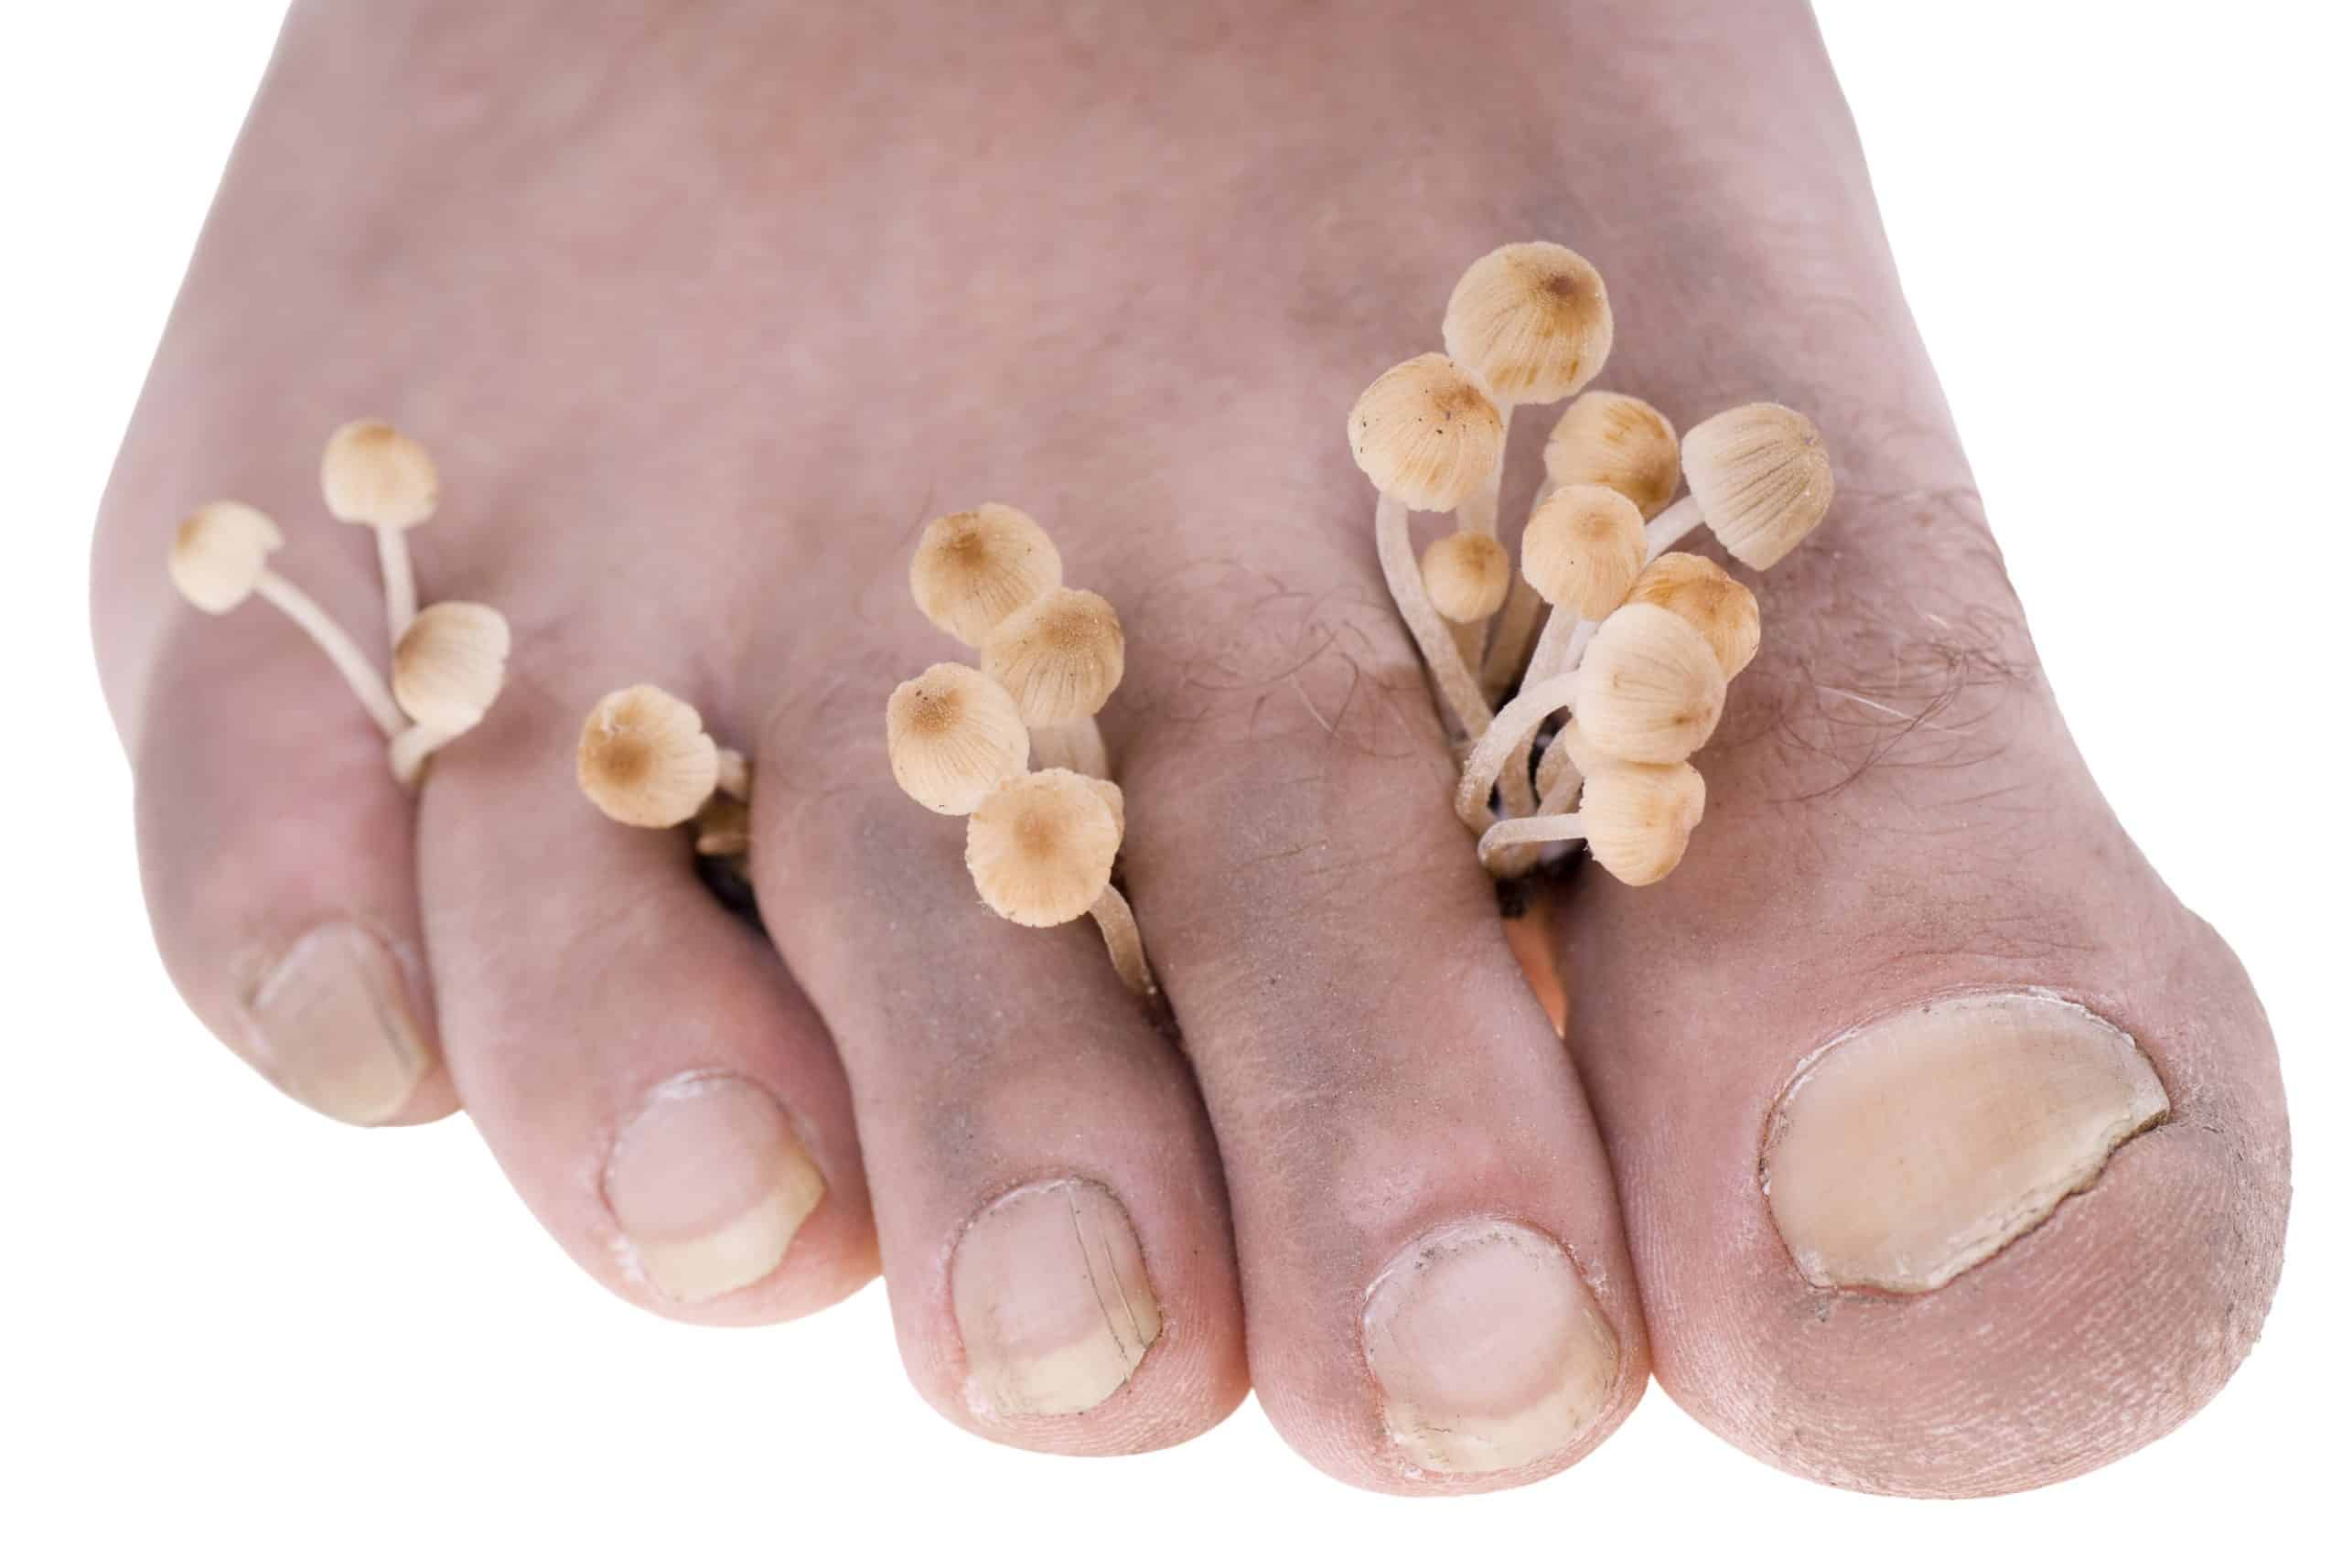 Fungal Nail Infections - 5 questions to ask